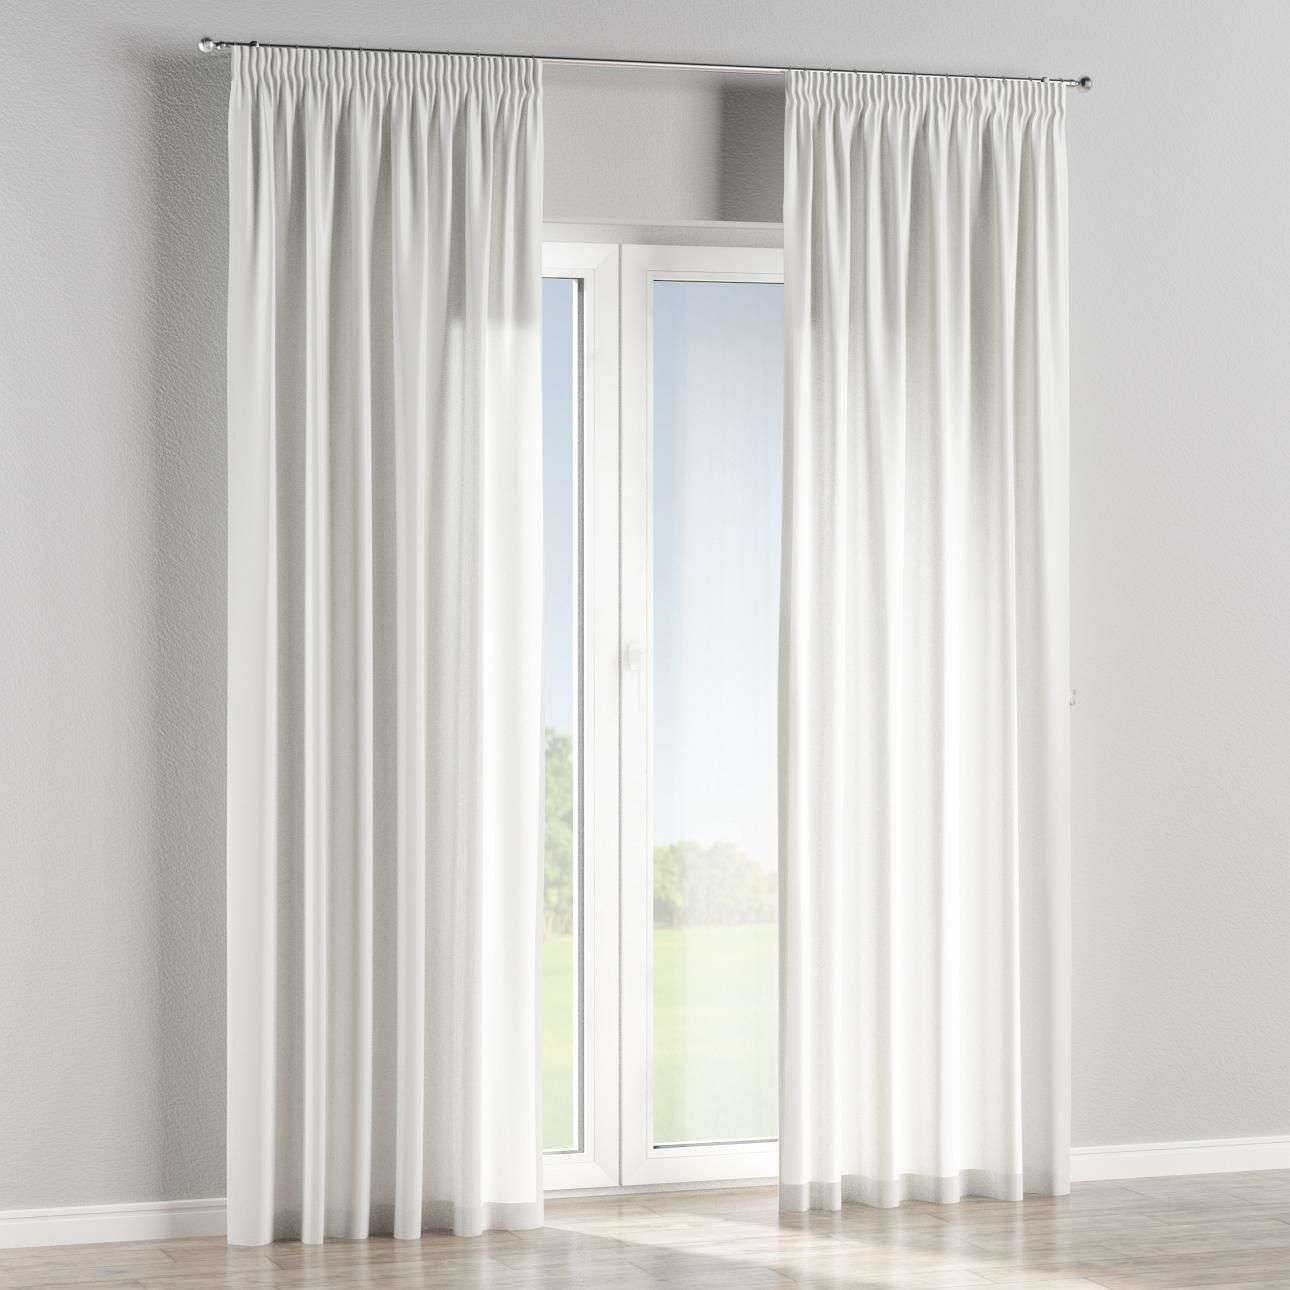 Pencil pleat curtains in collection Taffeta, fabric: 103-86